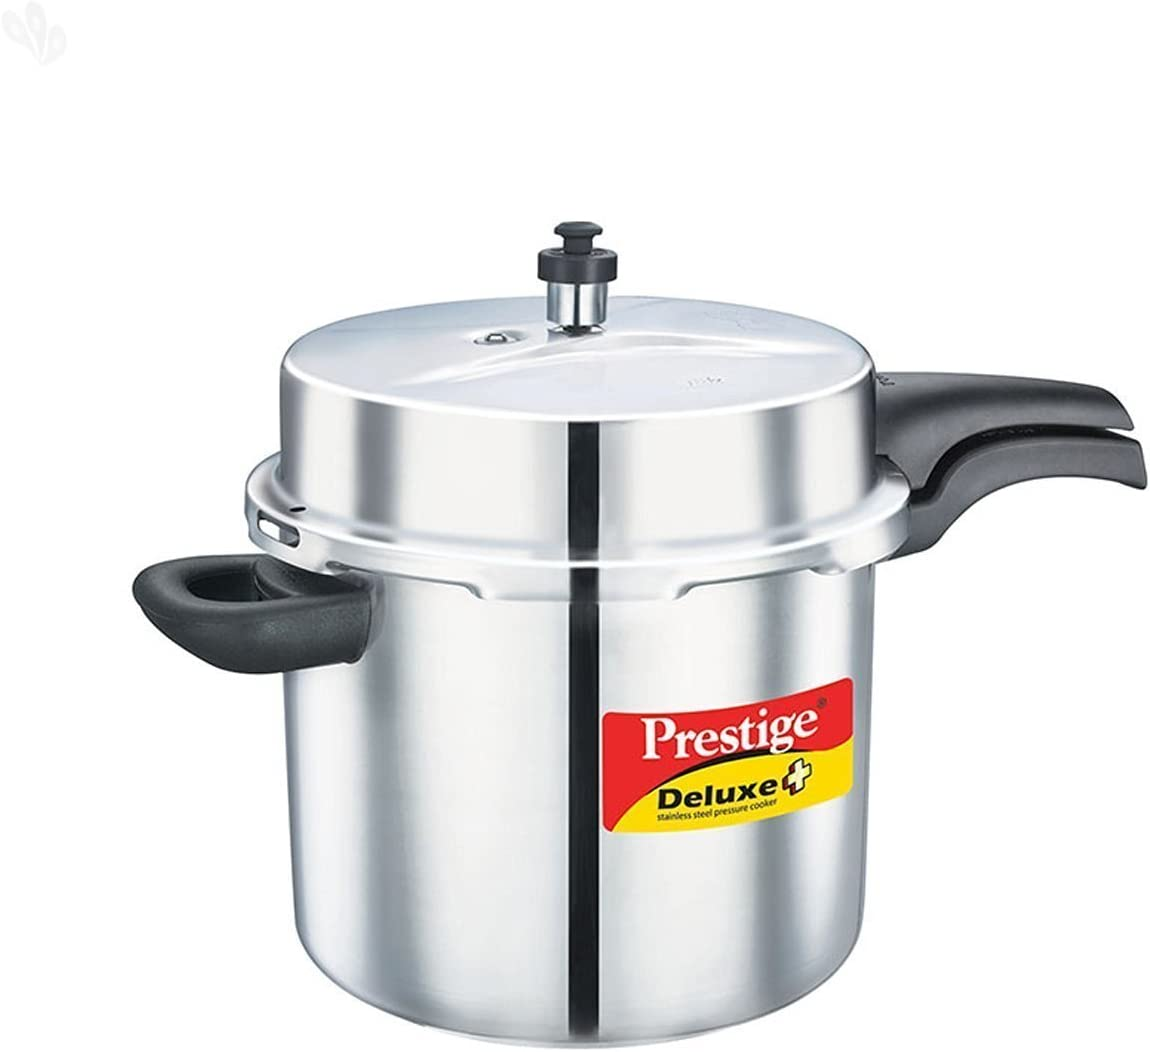 Prestige Deluxe Alpha Induction Base Pressure Cooker, 10-Liter, Stainless Steel